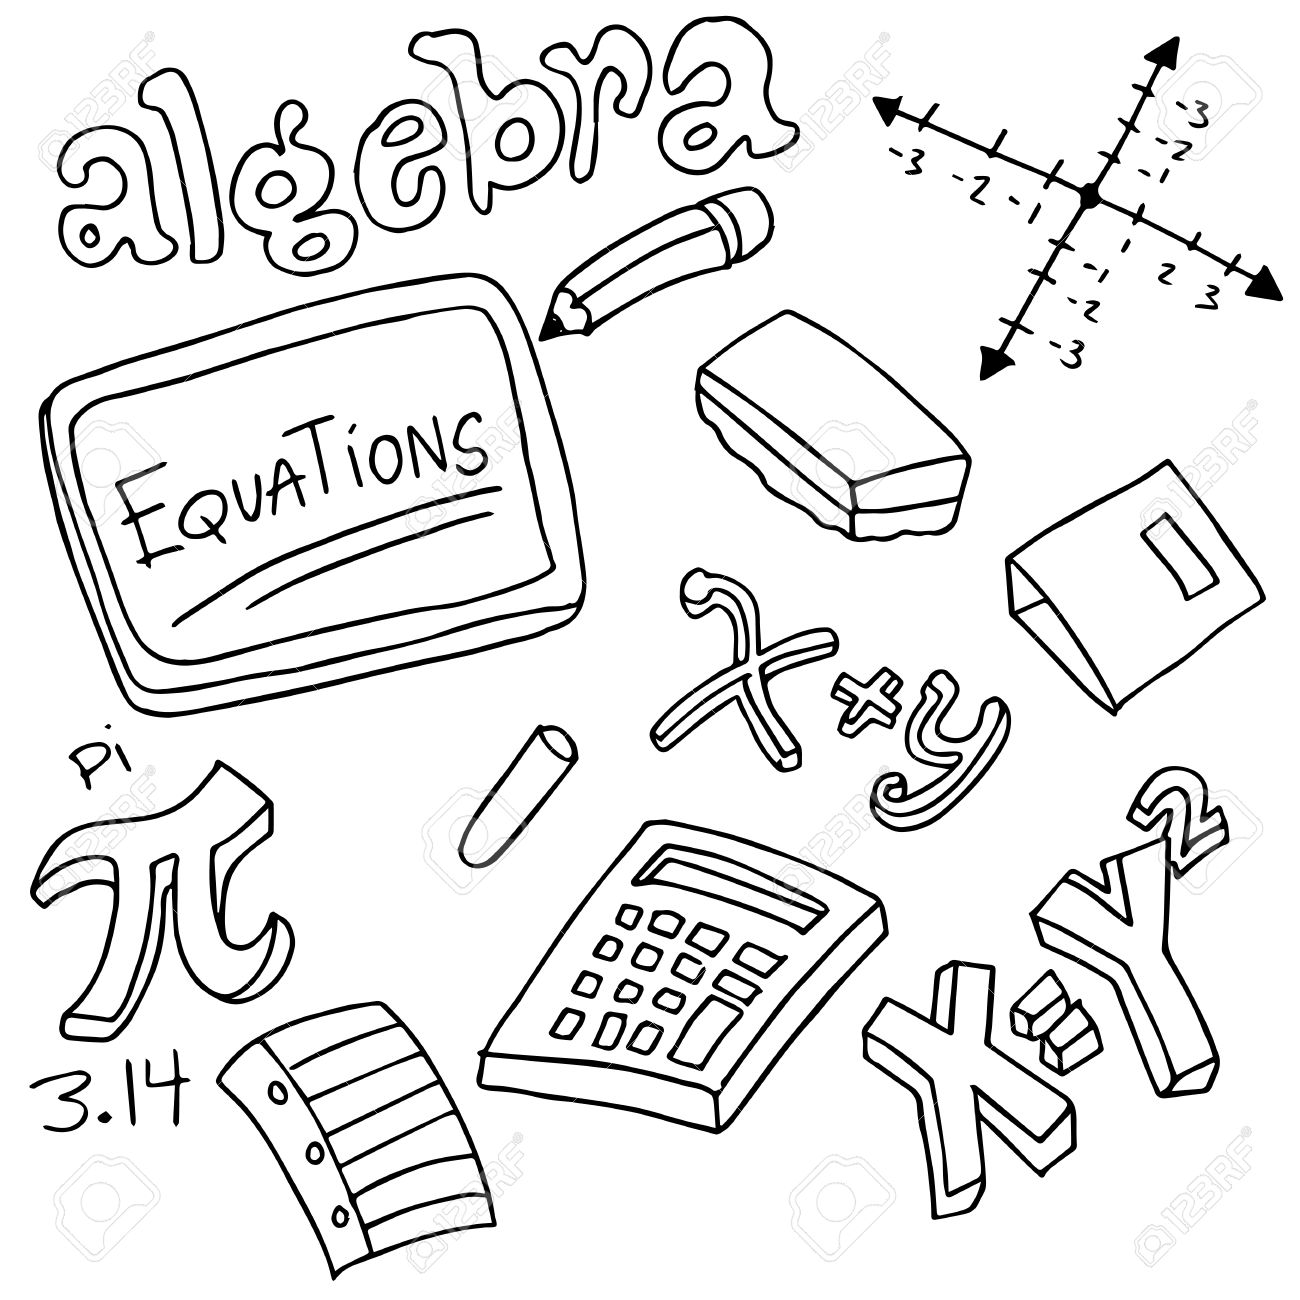 An image of algebra symbols and objects royalty free cliparts an image of algebra symbols and objects stock vector 29191059 biocorpaavc Choice Image